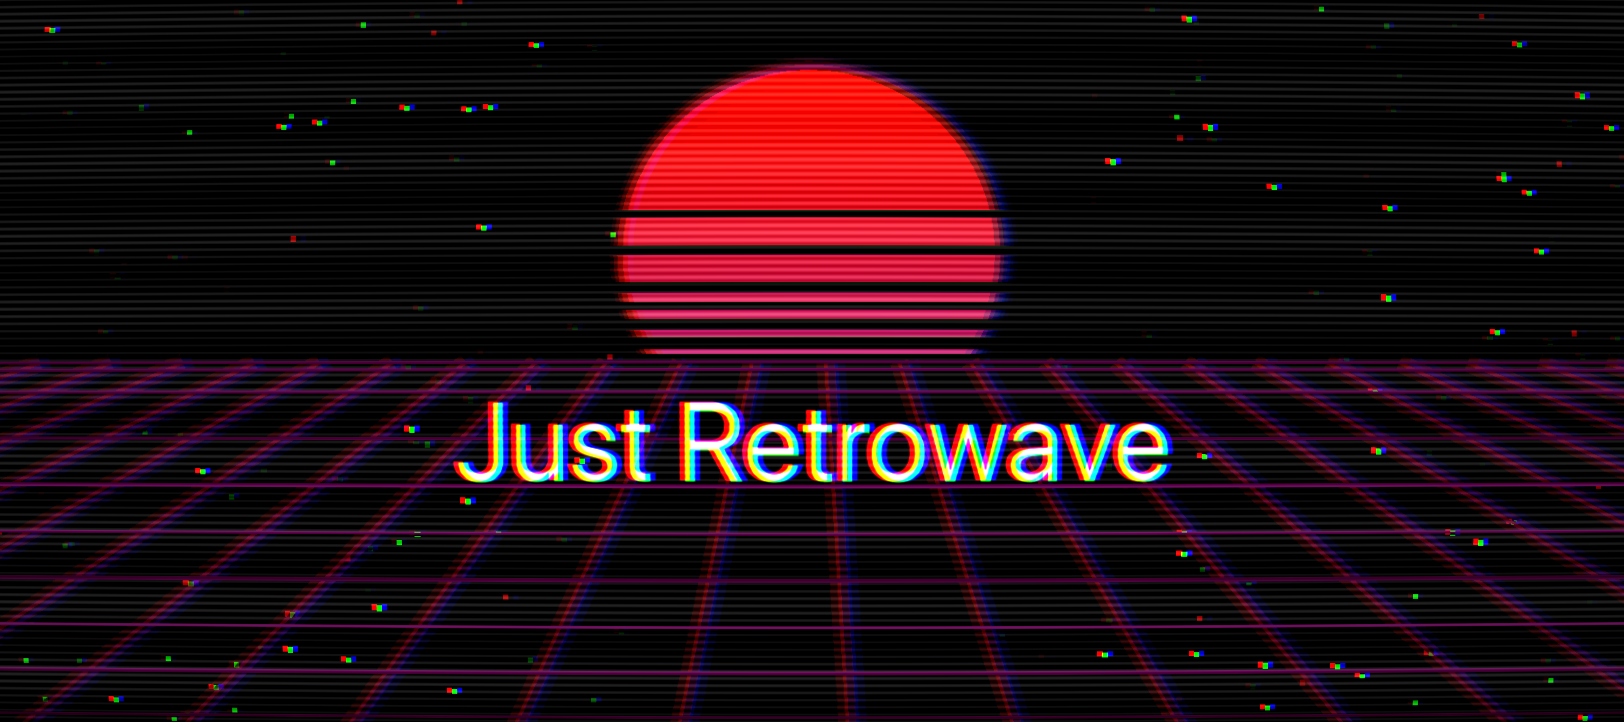 Just Retrowave